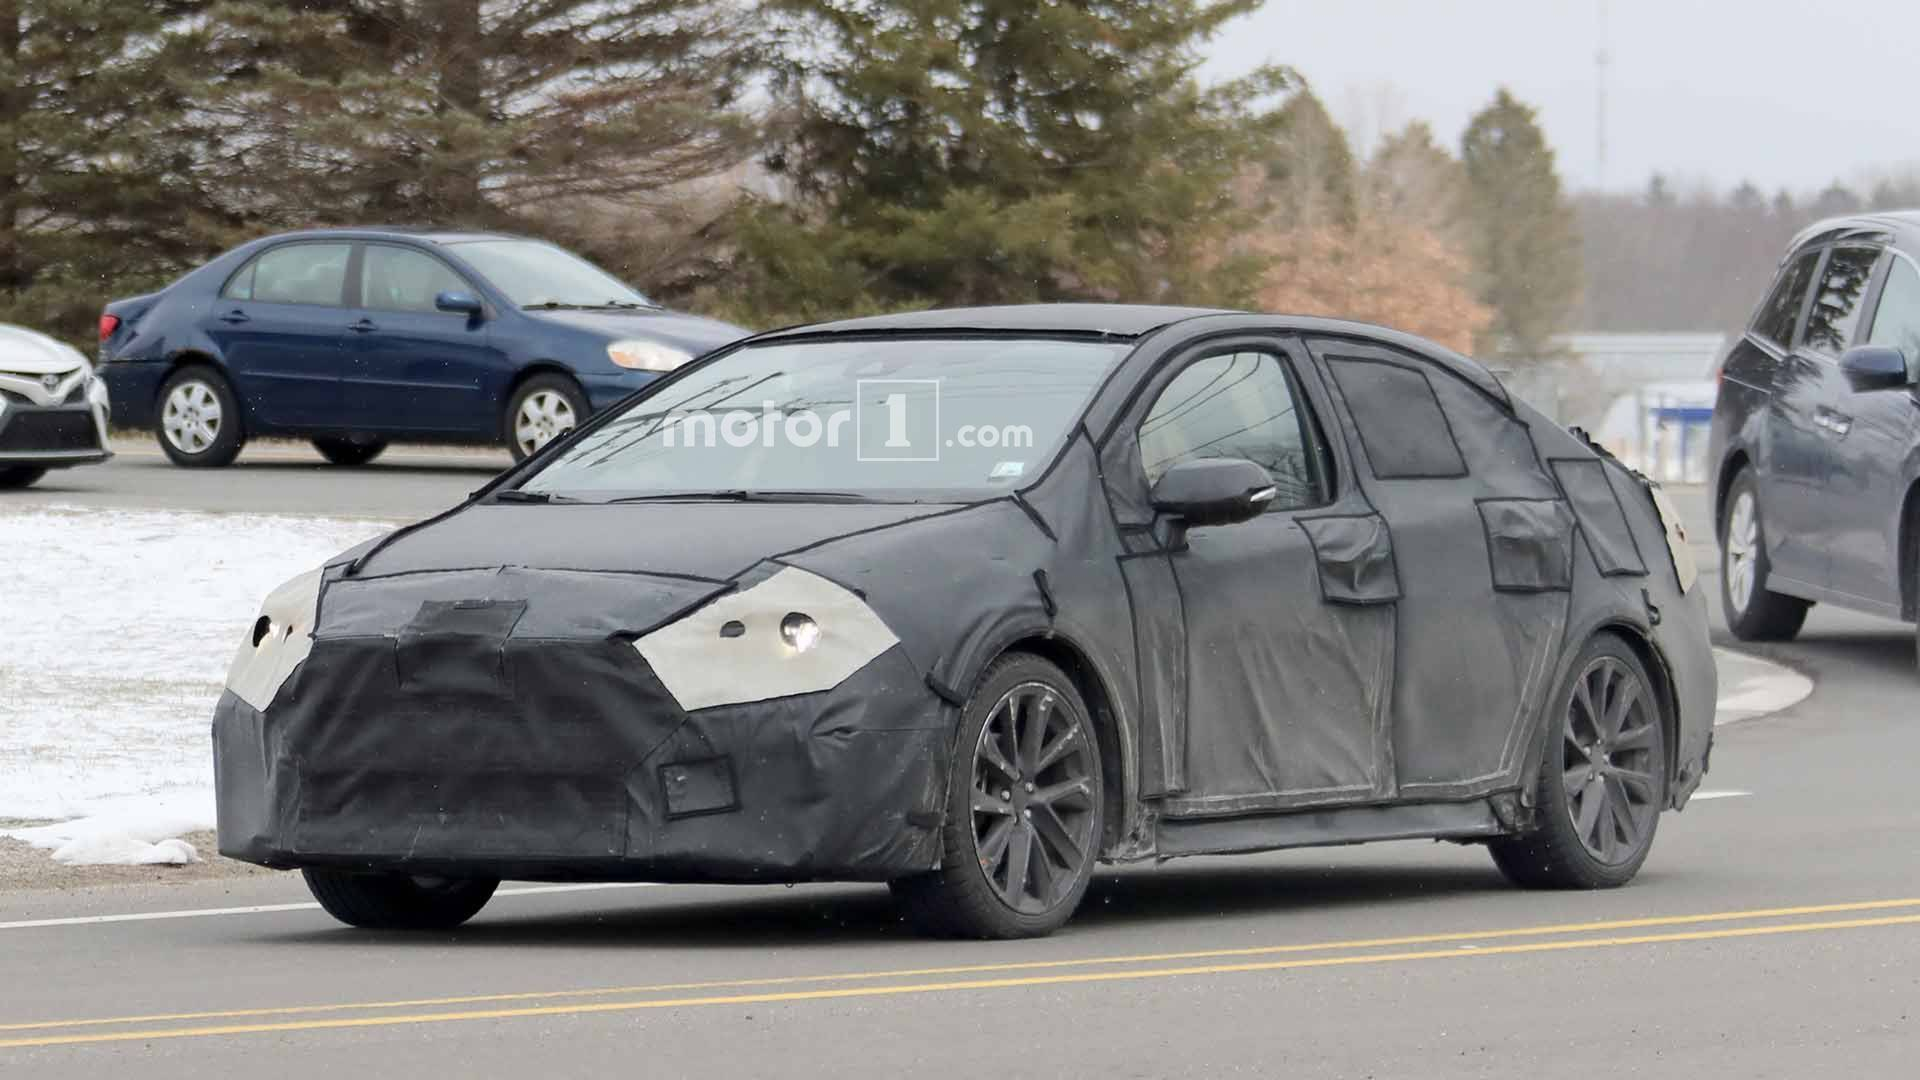 27 All New 2020 Spy Shots Toyota Prius New Model and Performance